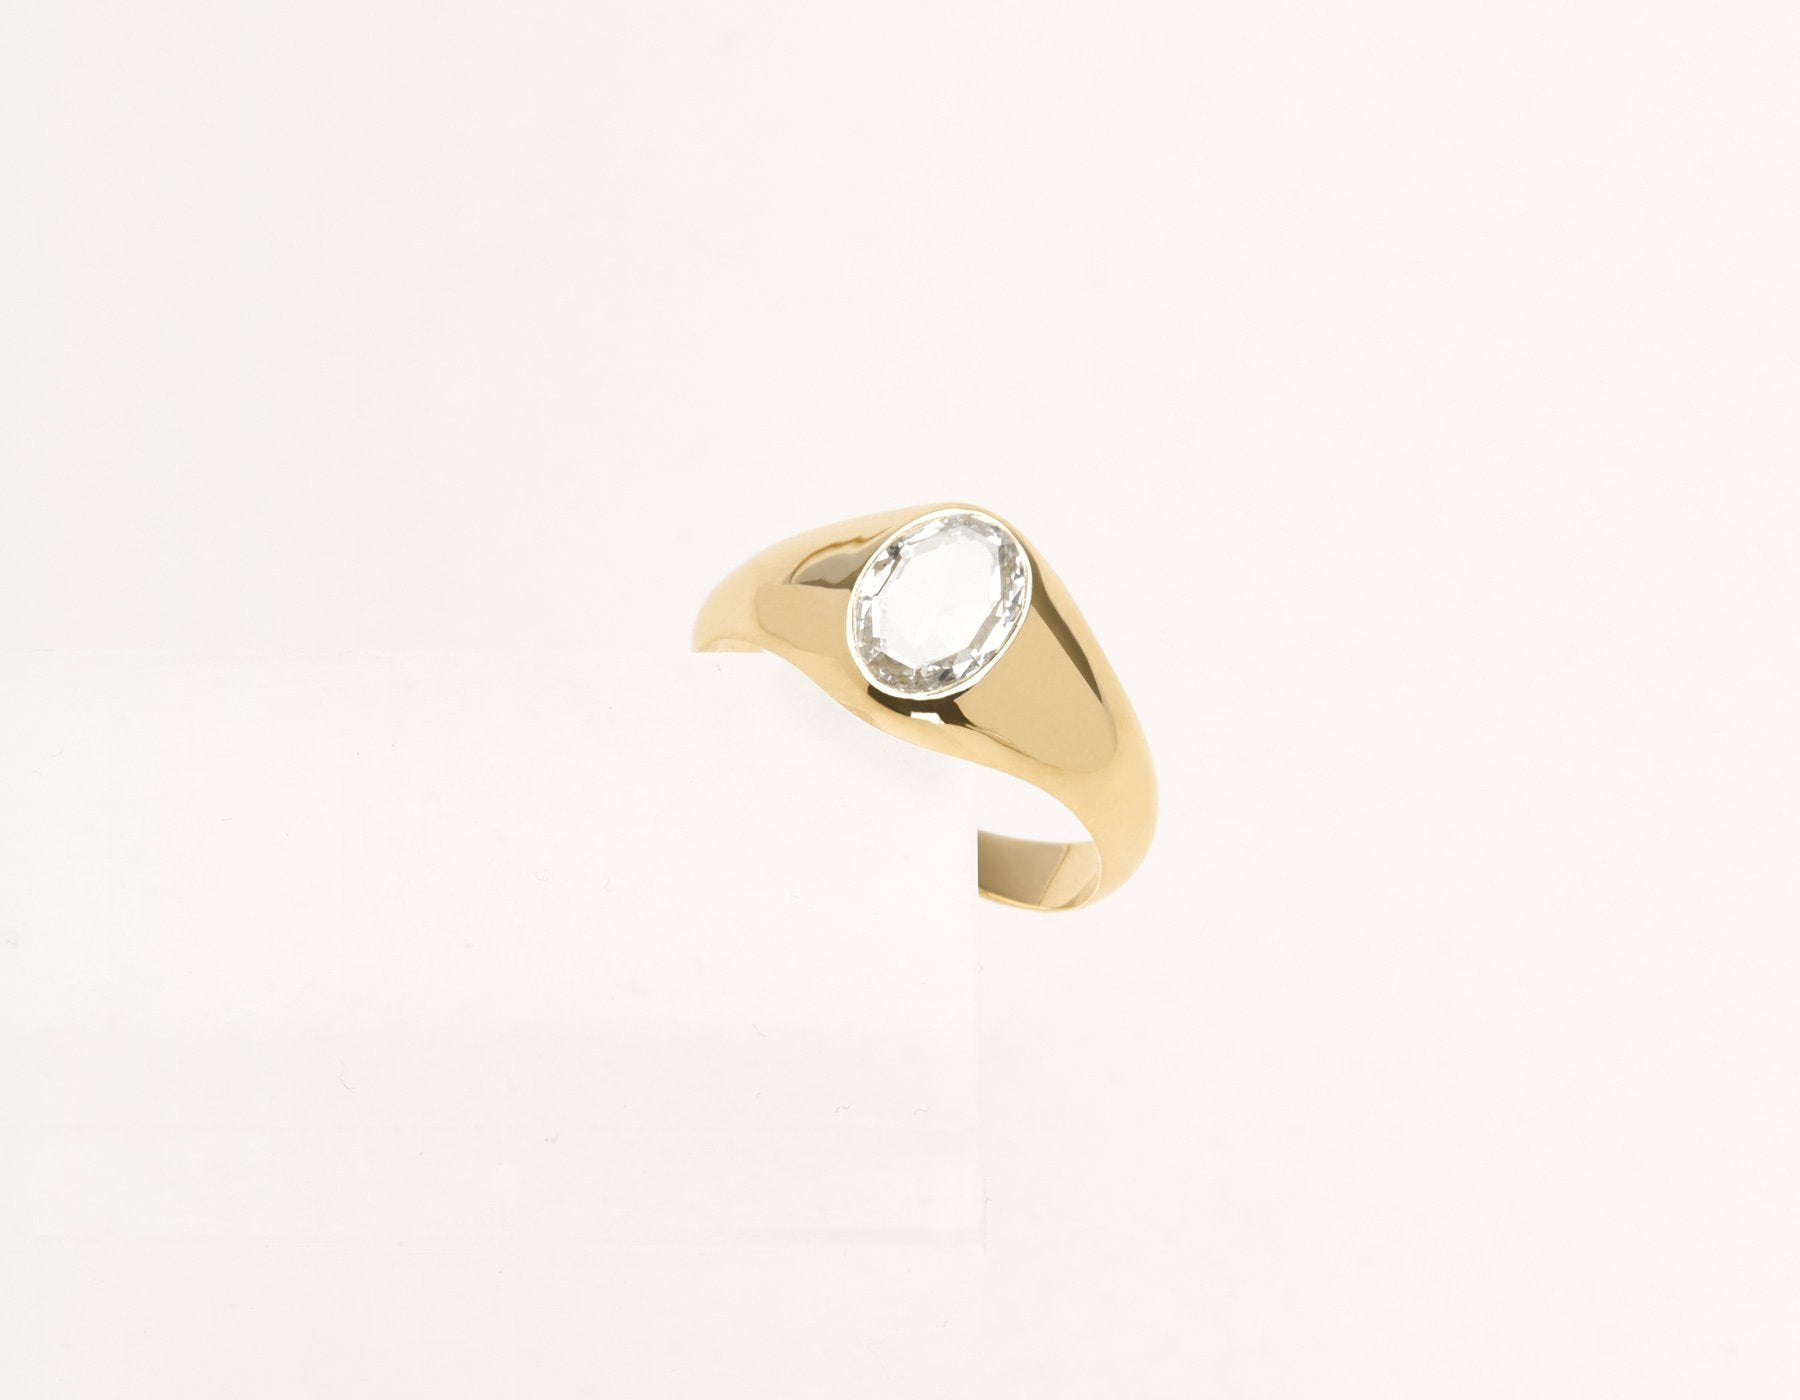 Contemporary classic Oval Rose Signet 18k solid gold diamond ring Vrai & Oro Modern Minimalist Jewelry, 18K Yellow Gold